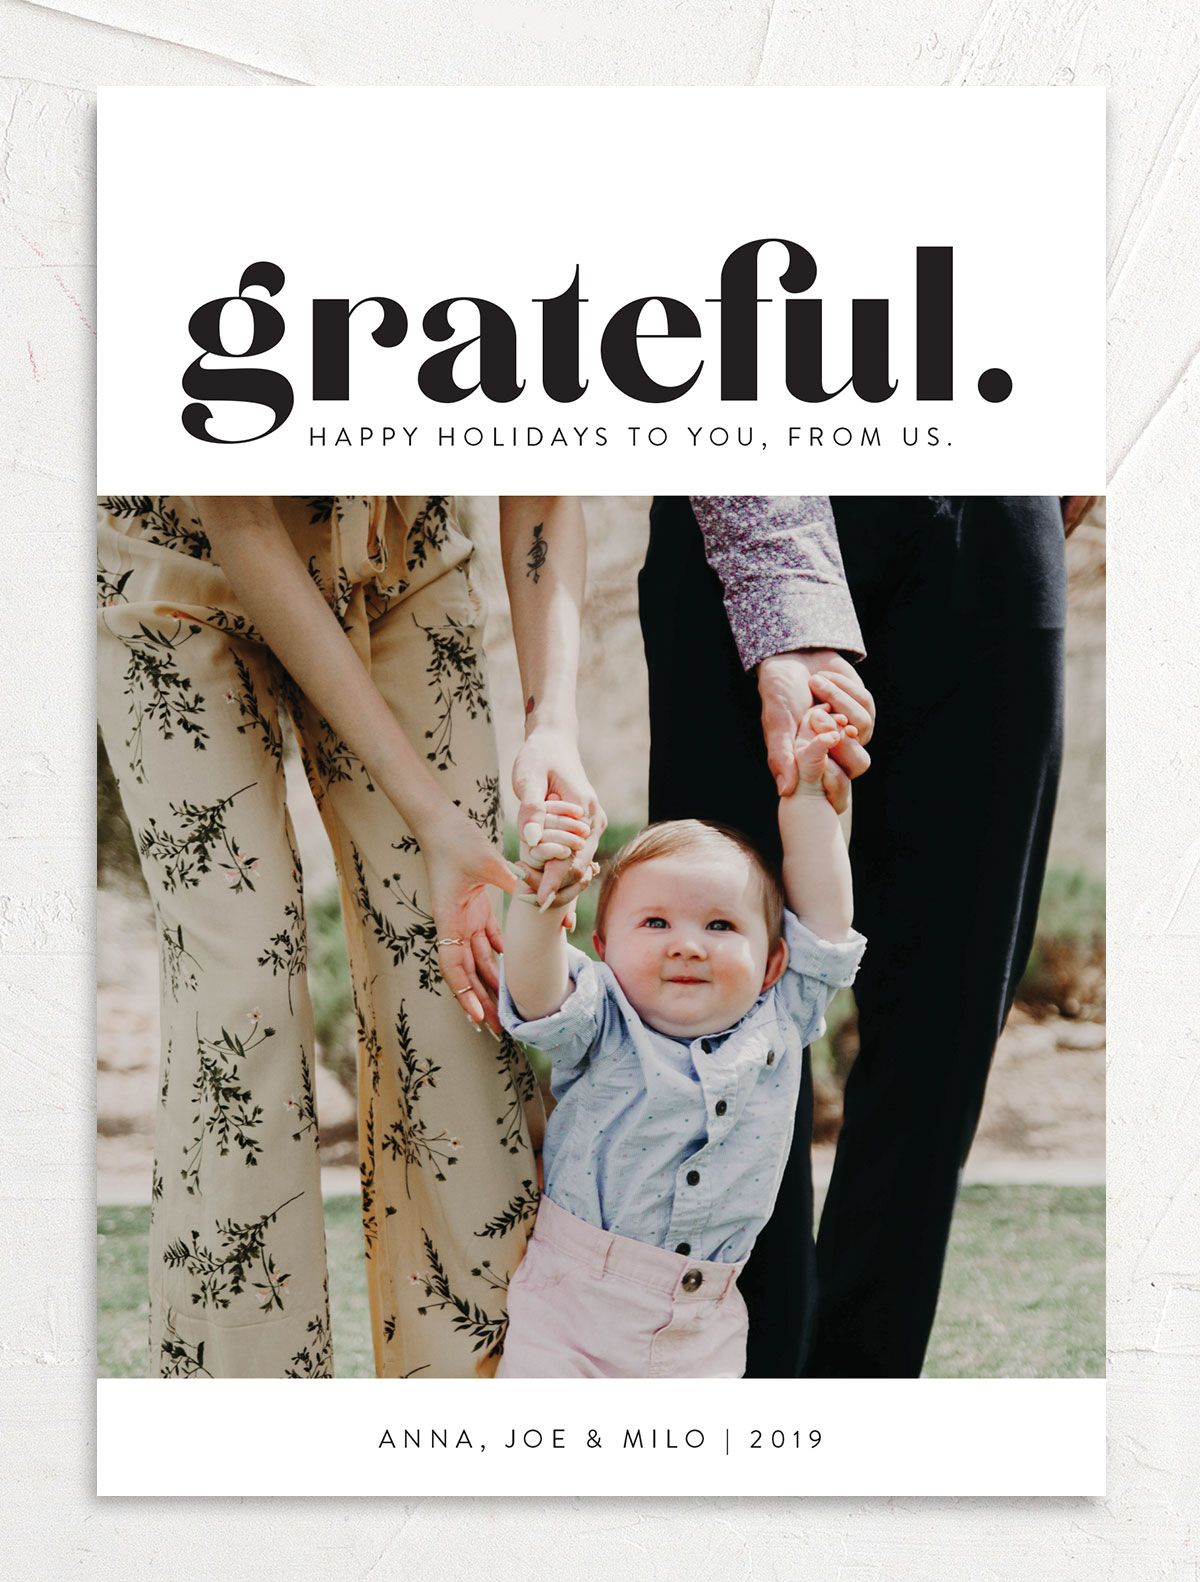 grateful holiday cards